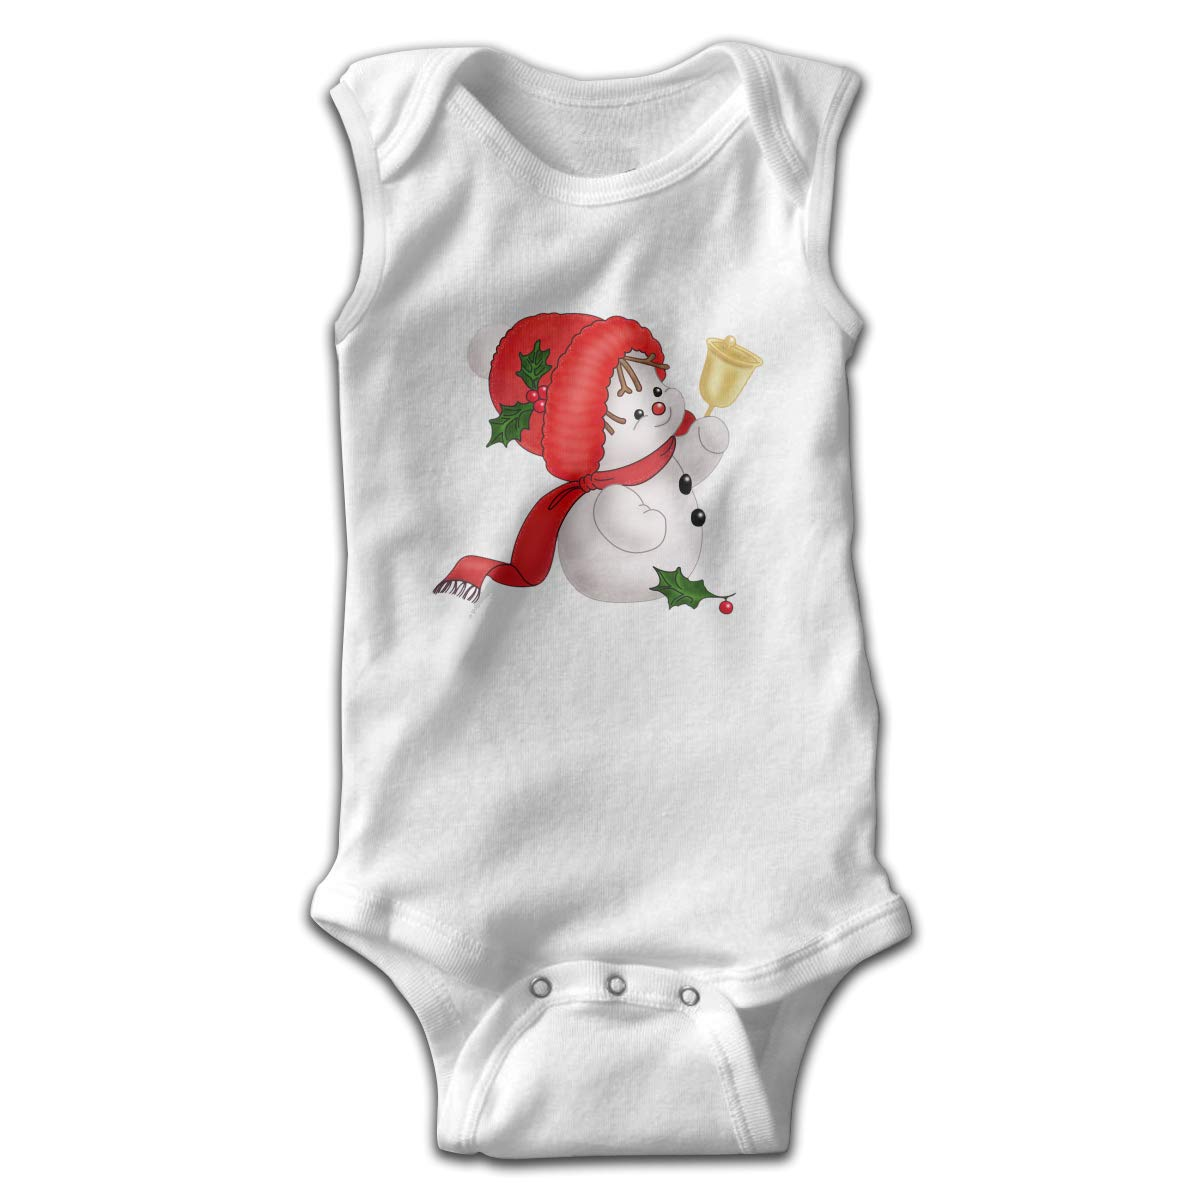 Infant Baby Boys Rompers Sleeveless Cotton Jumpsuit,Cute Snowman Baby Bodysuit Summer Pajamas